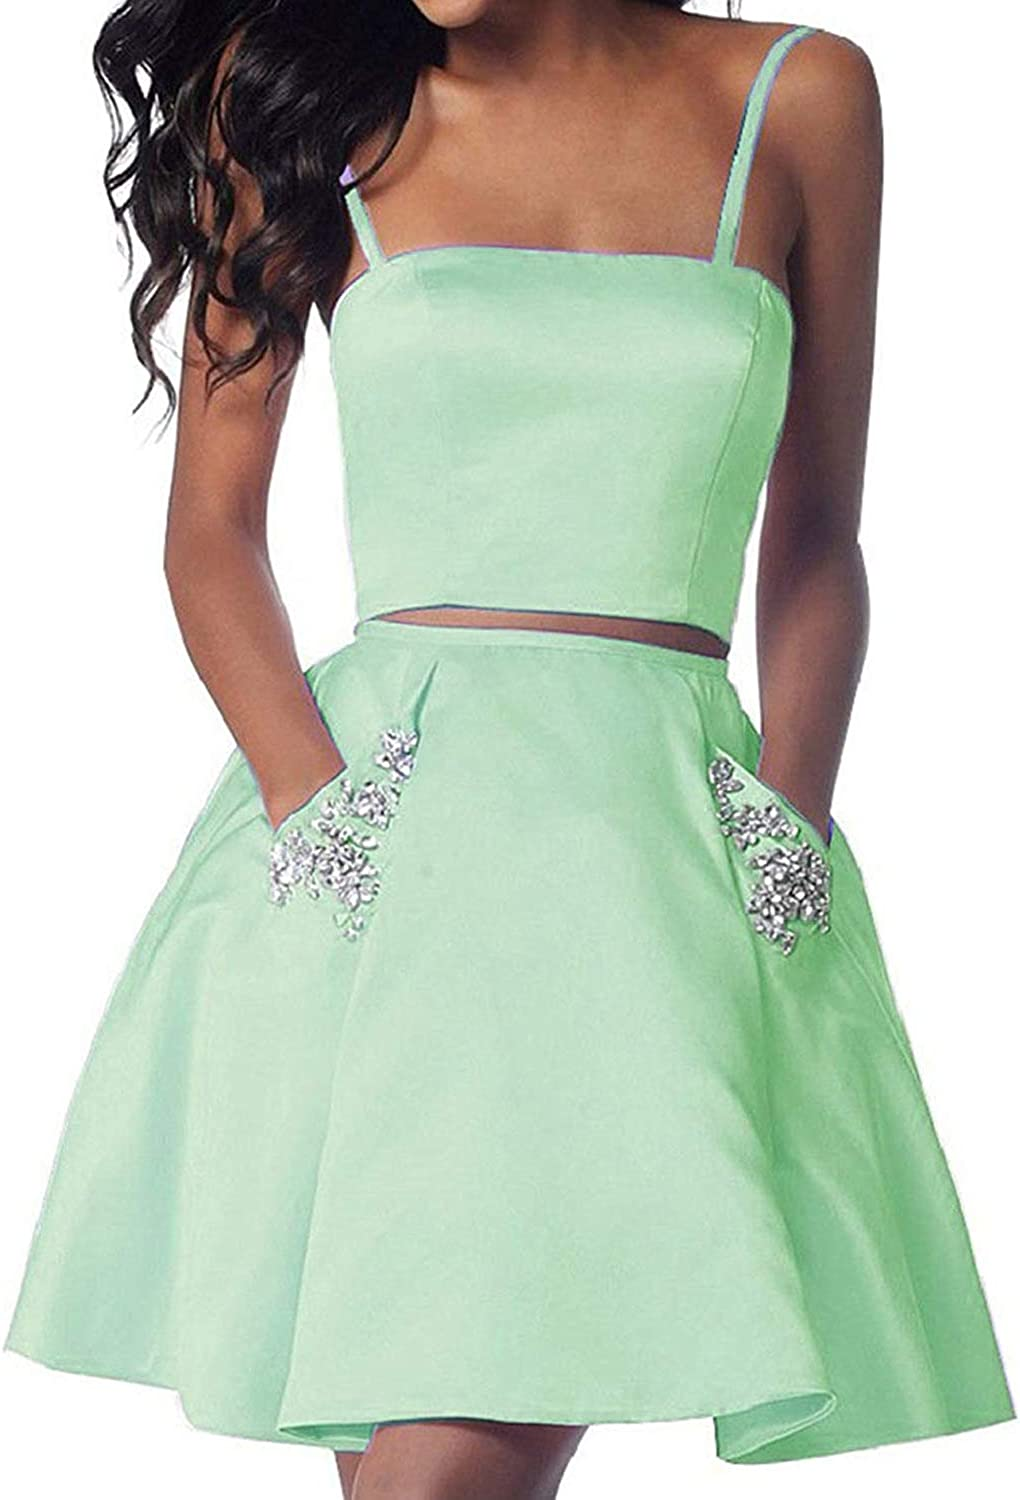 JoyVany Women Beading 2 Piece Homecoming Dresses Short 2018 Formal Gowns with Pockets JH081